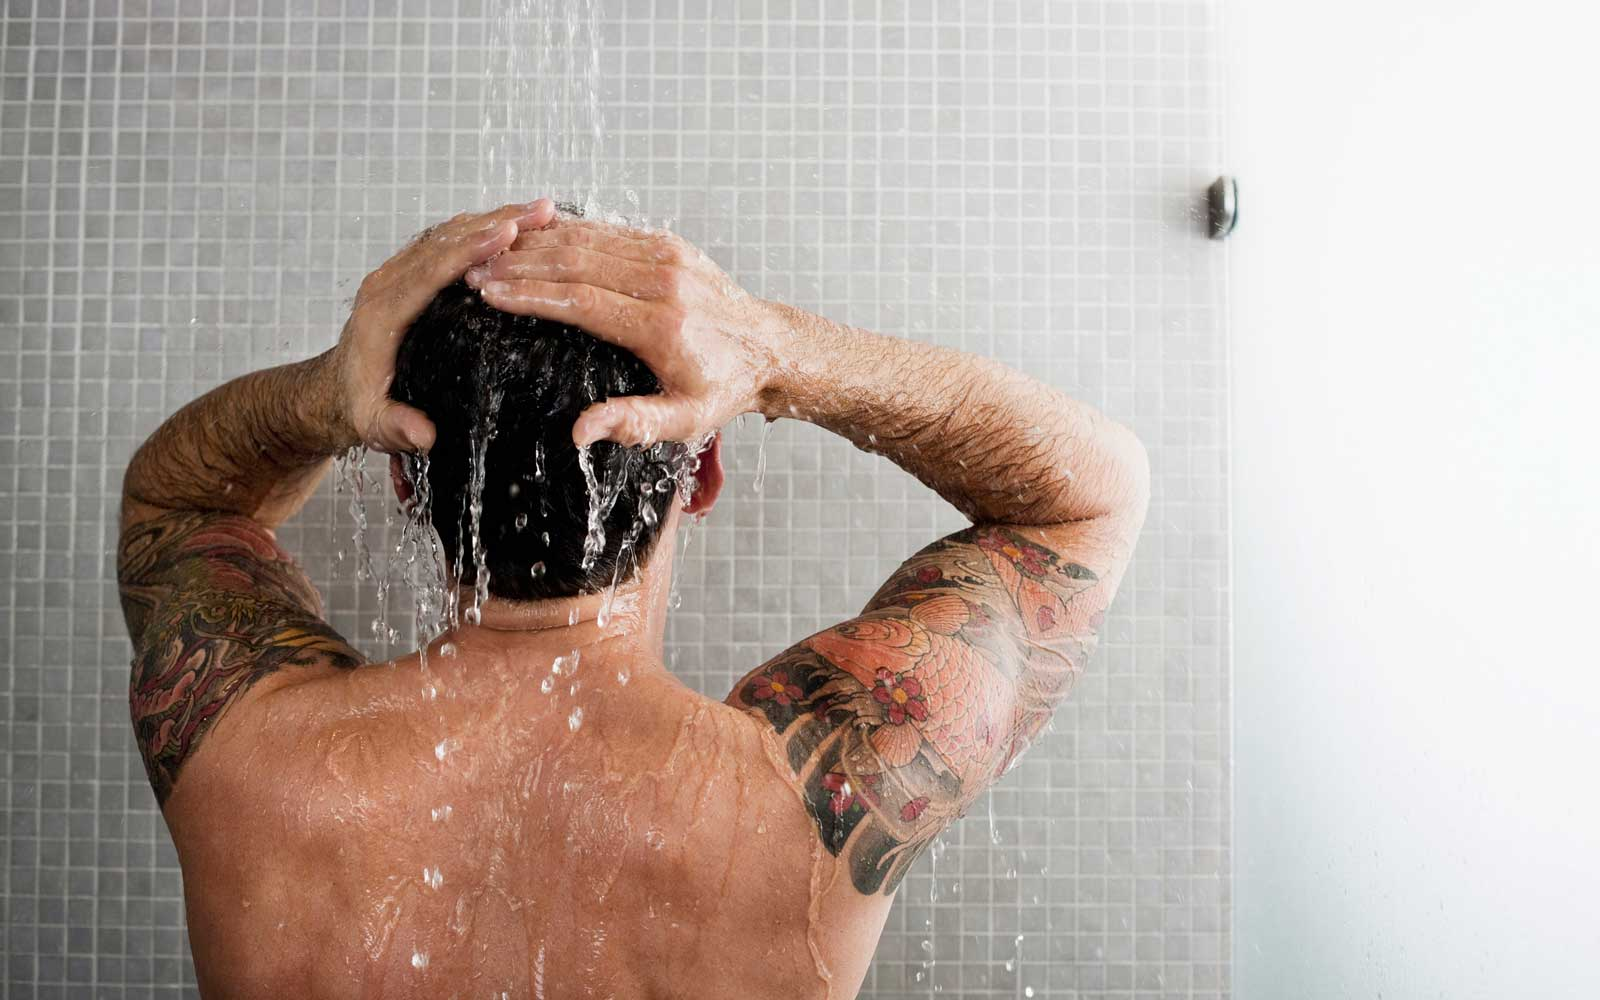 The Best Time to Shower, According to the Experts